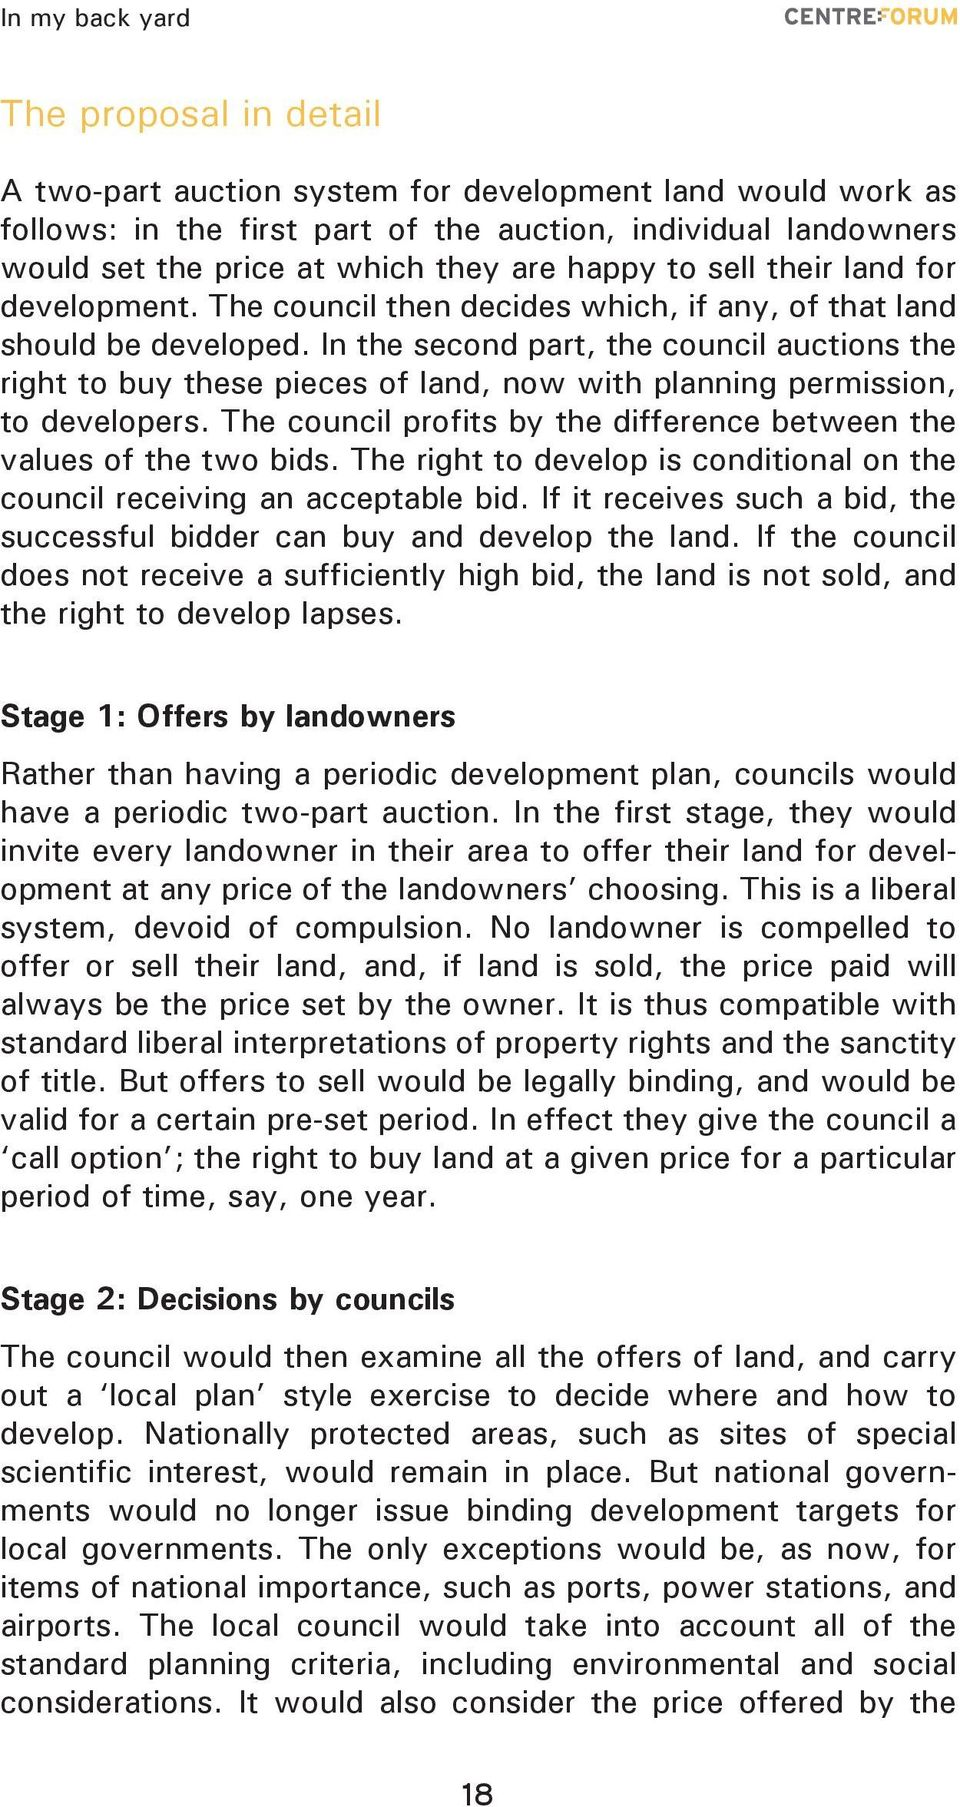 In the second part, the council auctions the right to buy these pieces of land, now with planning permission, to developers. The council profits by the difference between the values of the two bids.